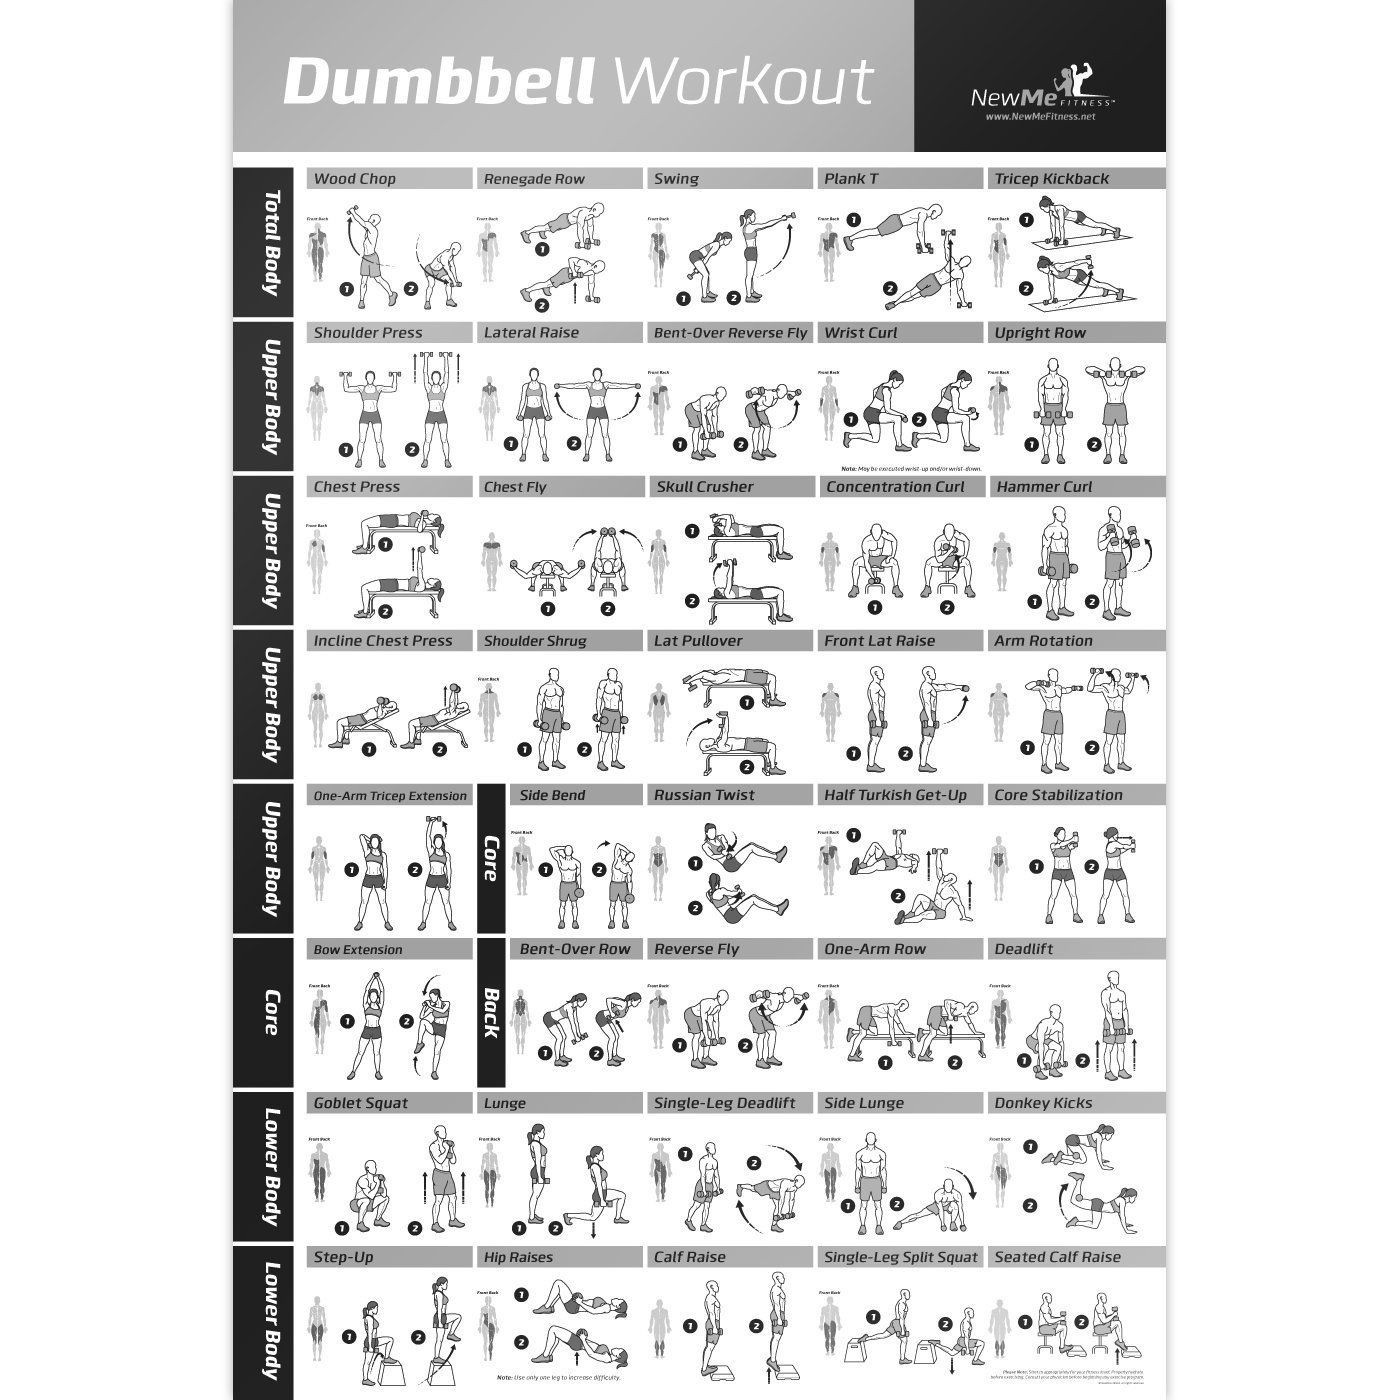 Amazon.com : Dumbbell Workout Exercise Poster - Strength ...